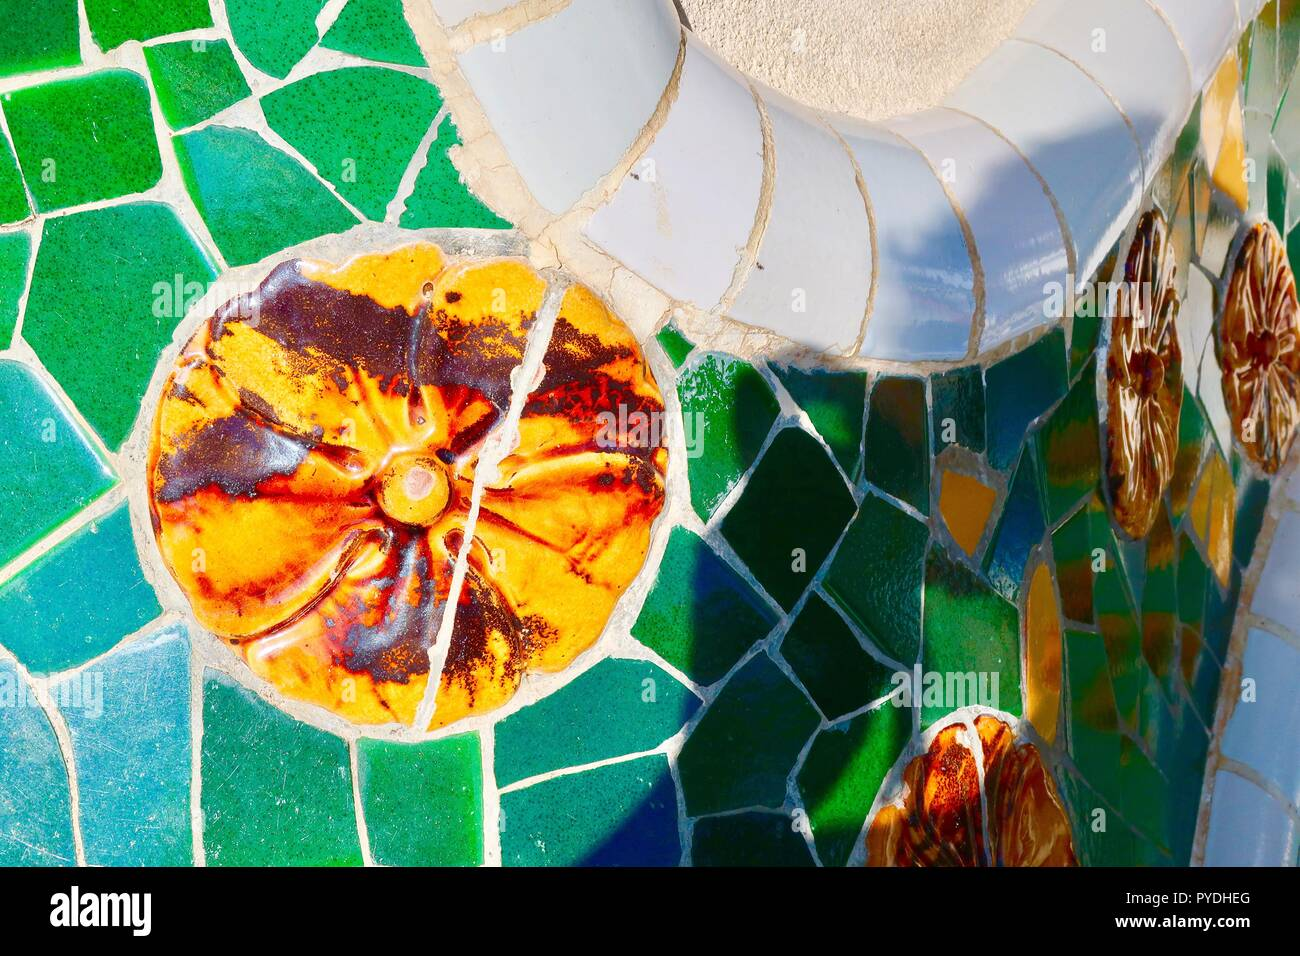 Barcelona, Spain. Mosaic detail at Gaudi's Park Guell on a hot sunny morning. October 2018. - Stock Image